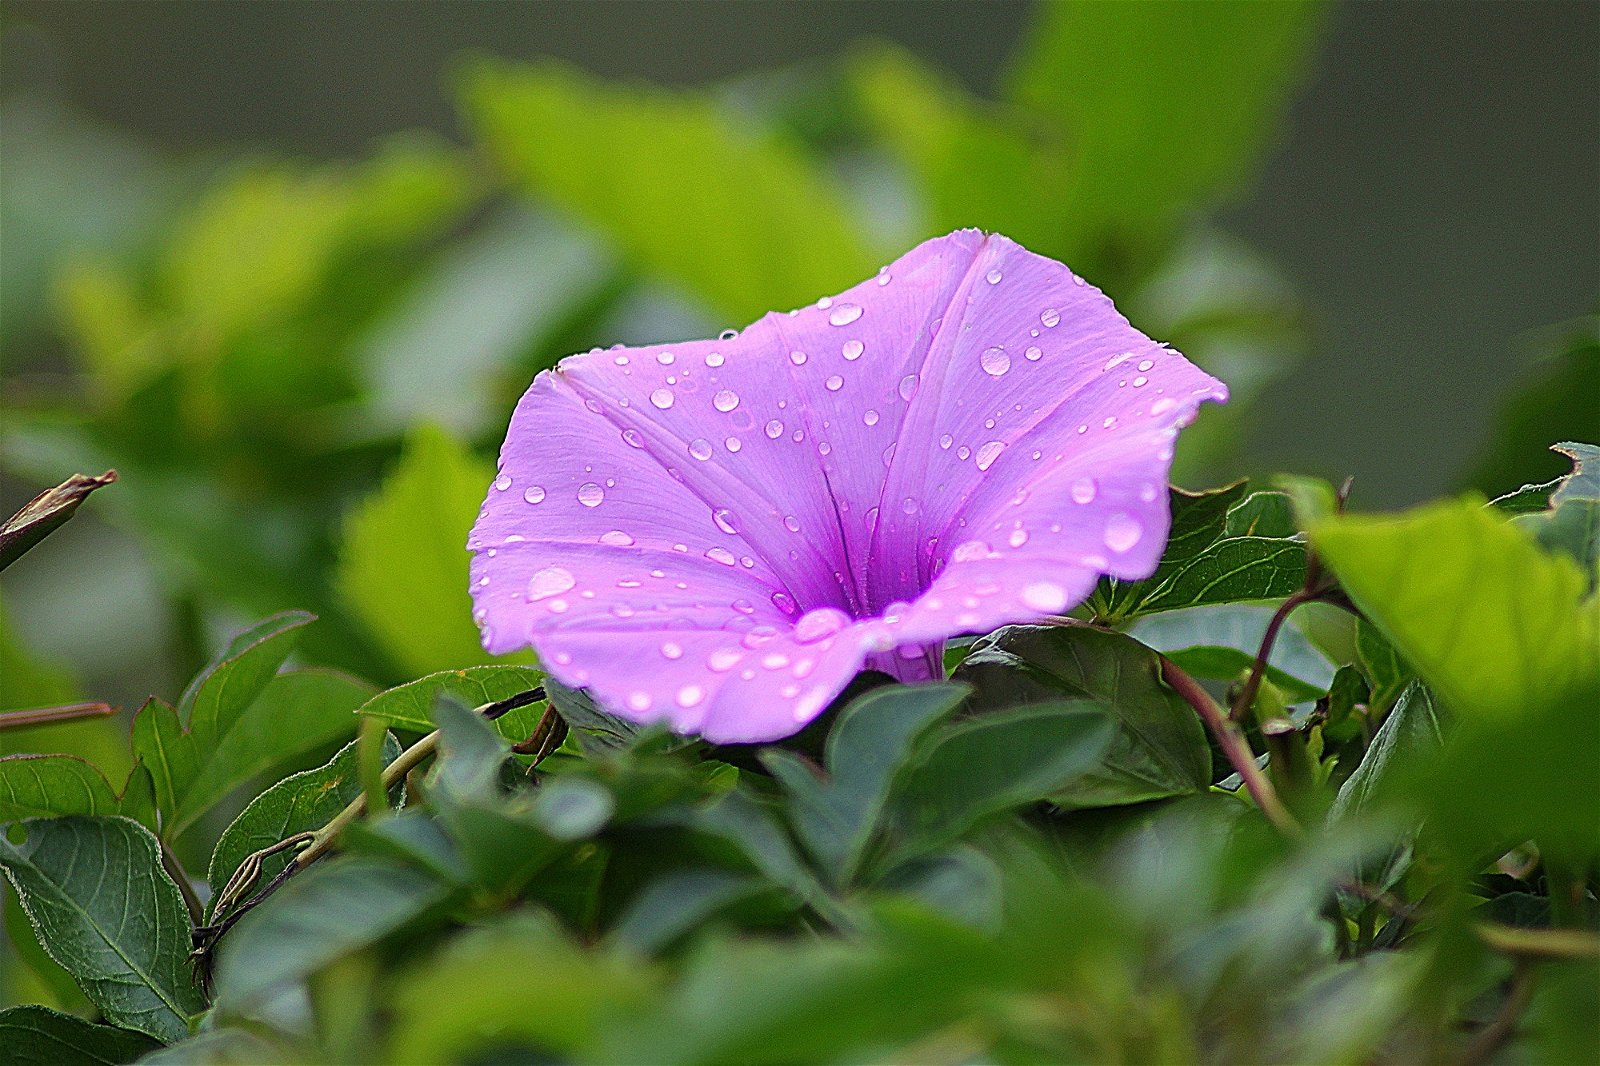 photo of a purple flower with water droplets